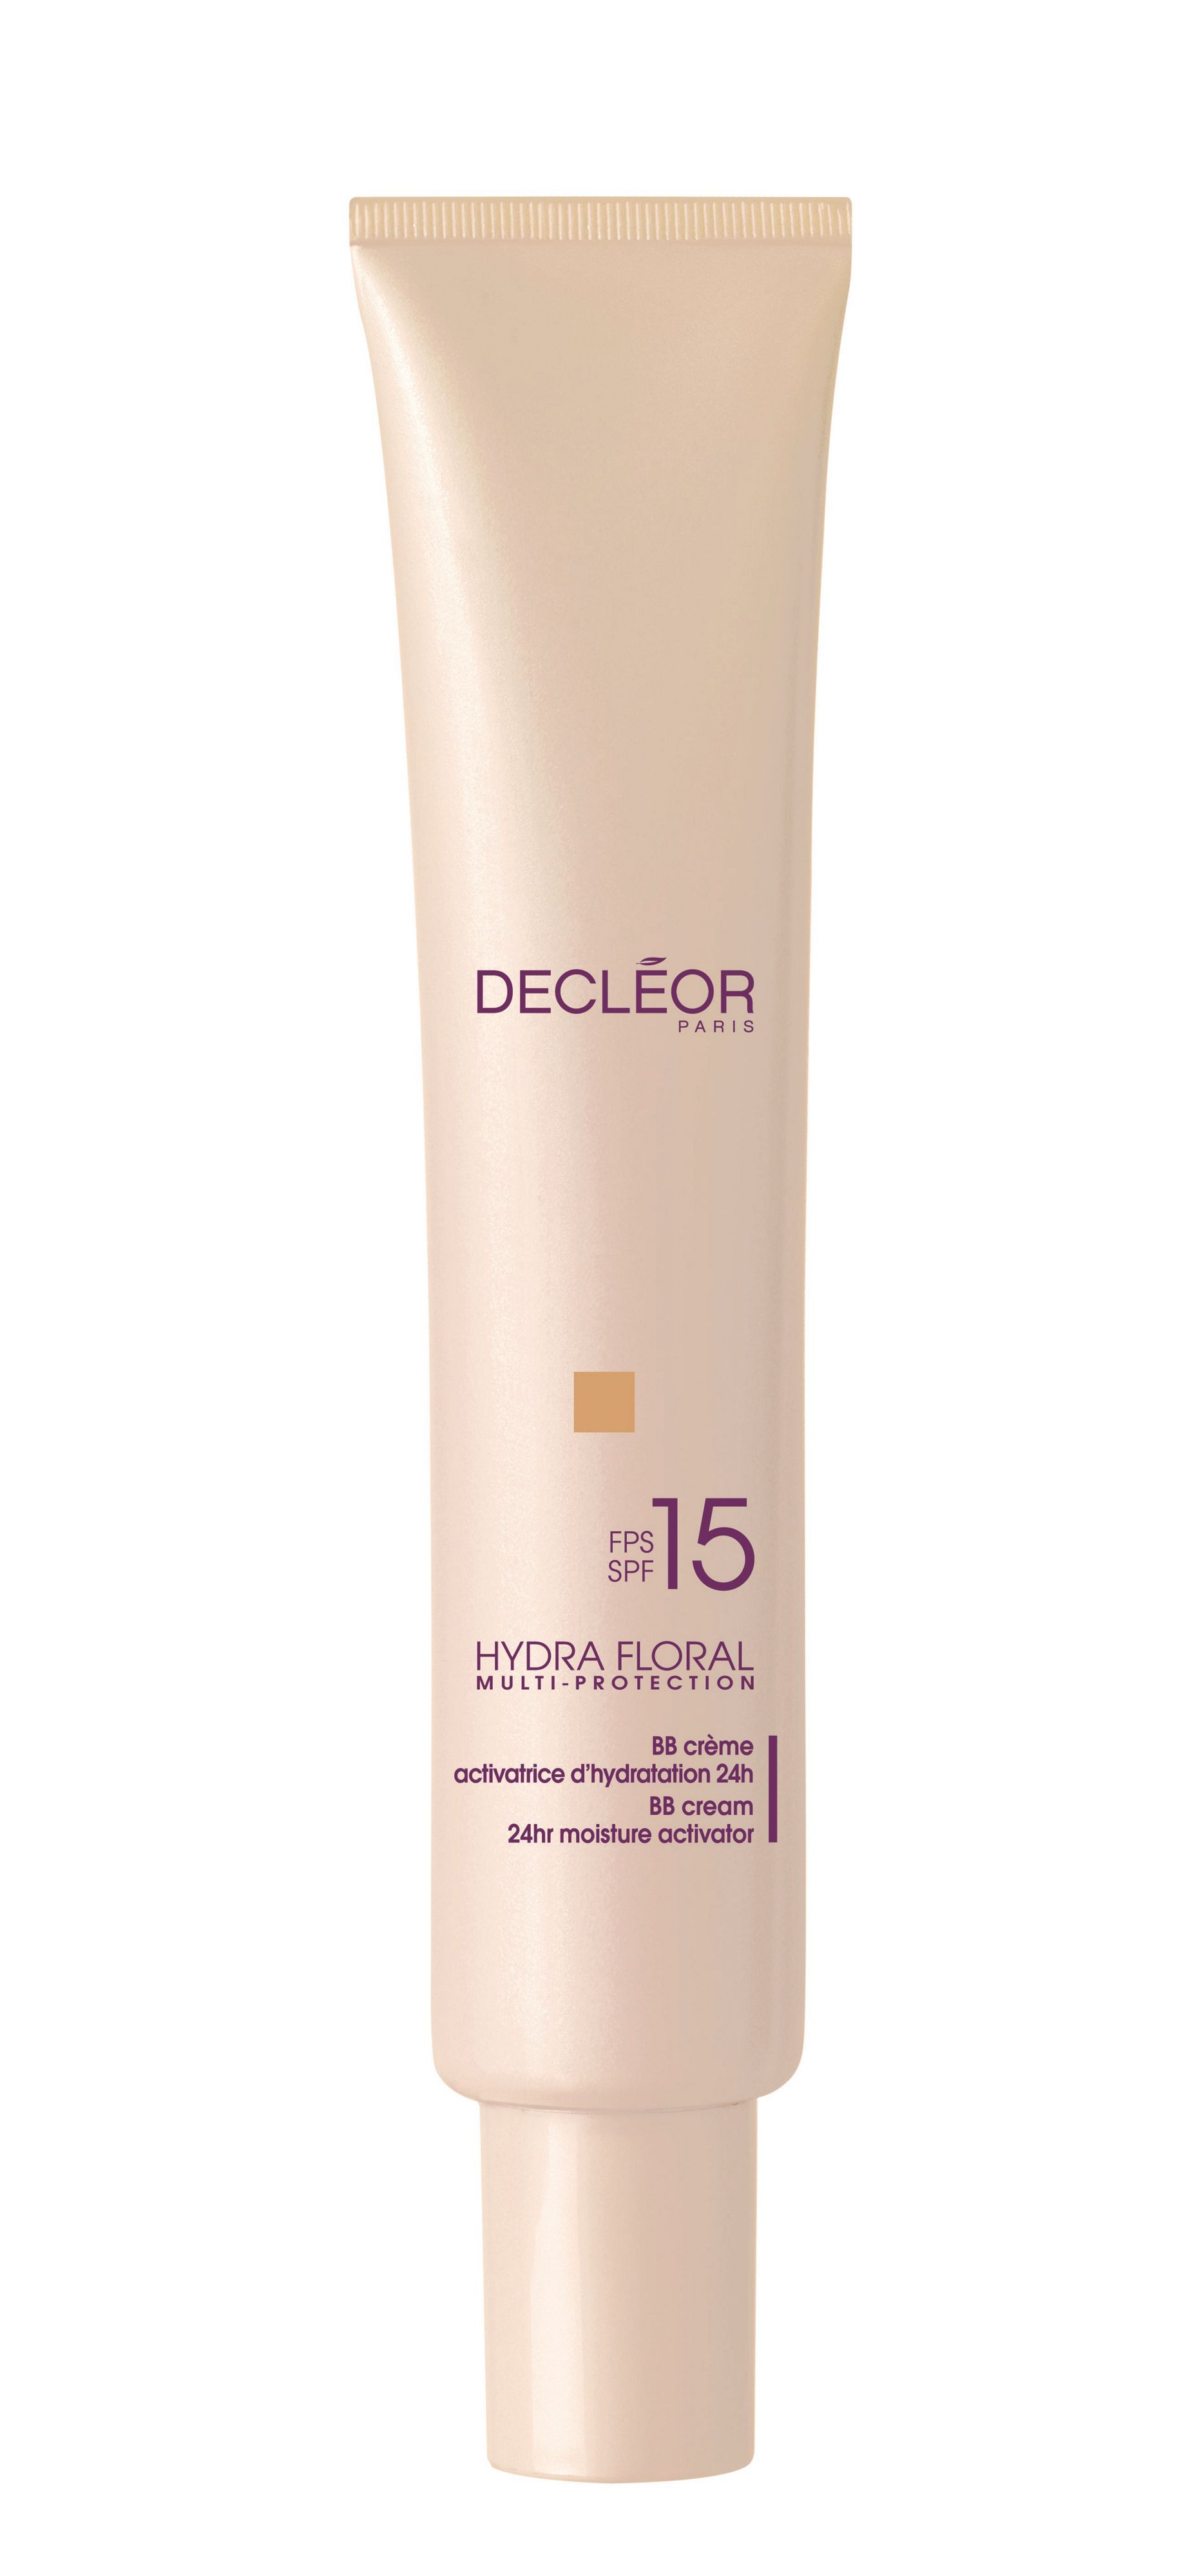 Hydra Floral Multi-Protection BB Cream 24hr